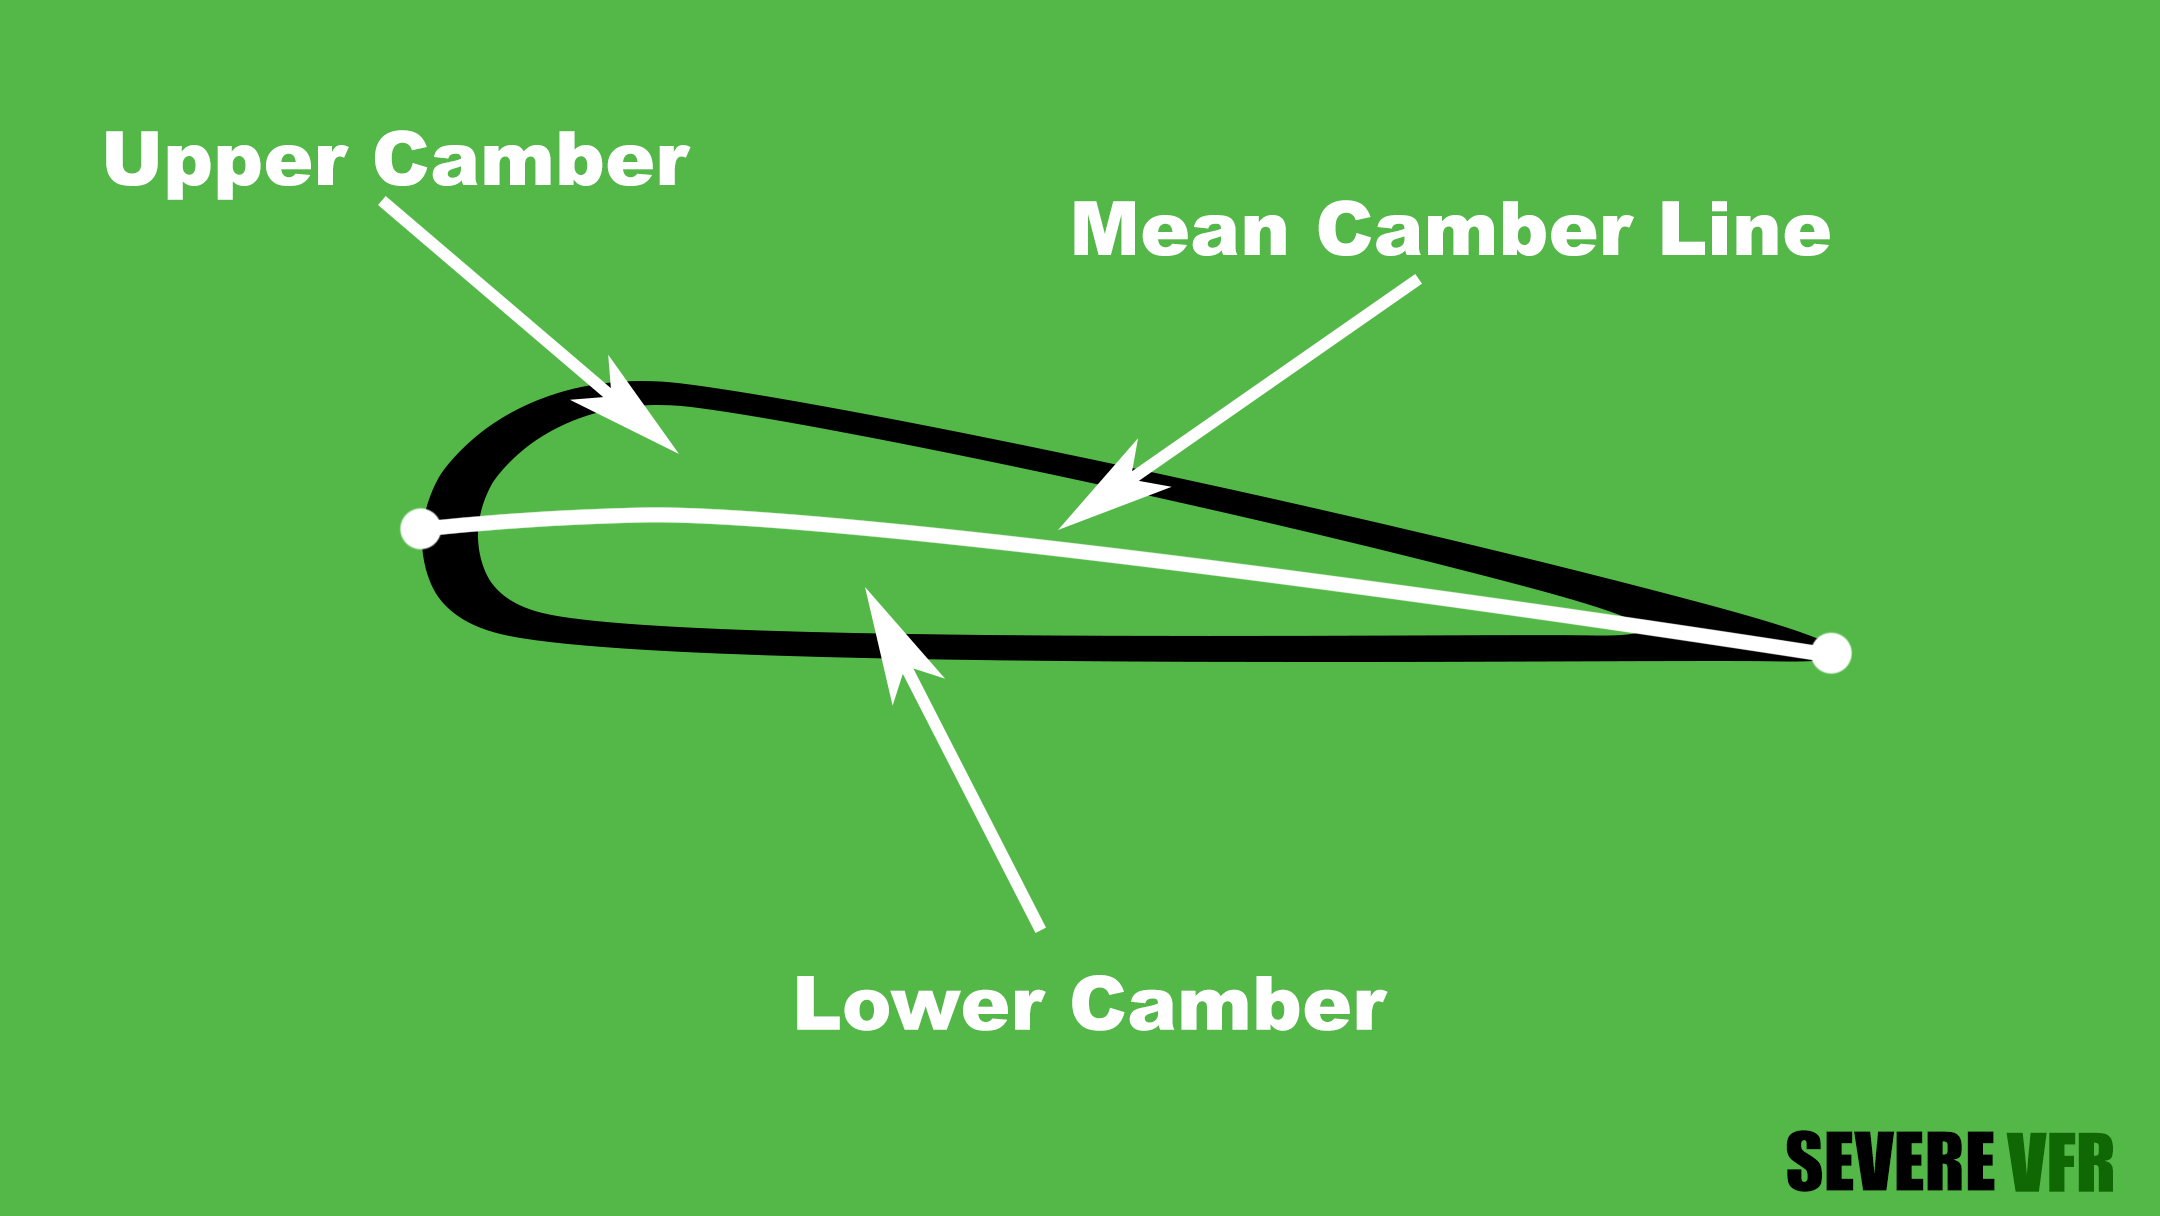 airfoil mean camber line, upper camber, and lower camber explanation graphic